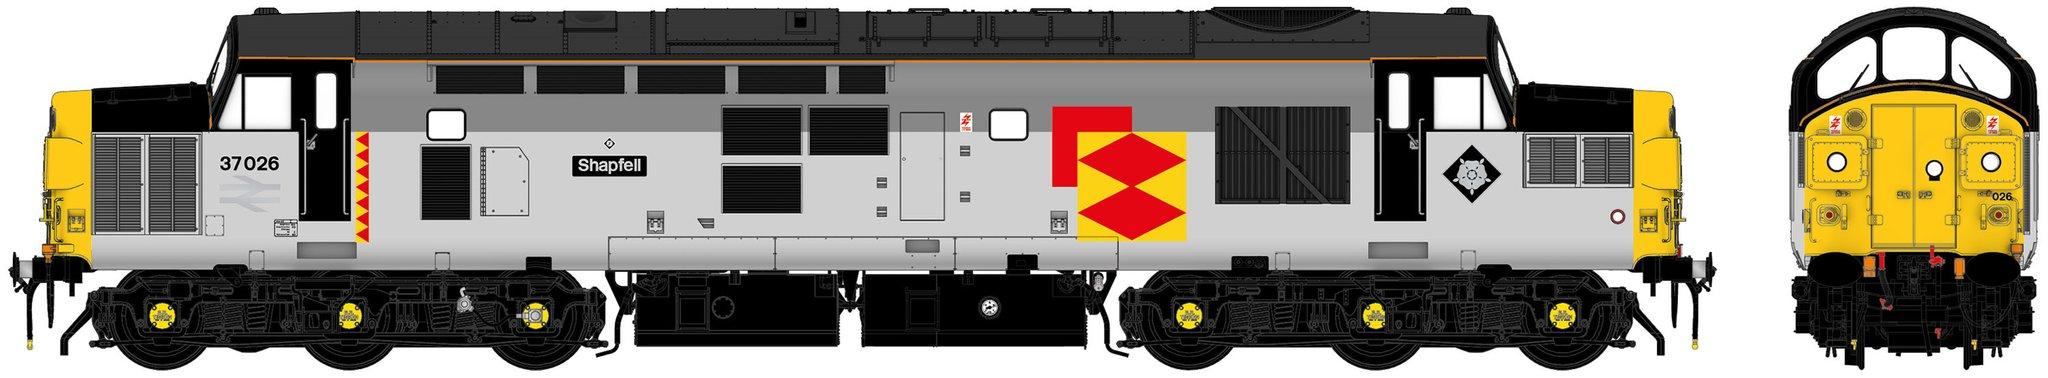 Accurascale Class 37 - 37026 Railfreight Distribution With Sound